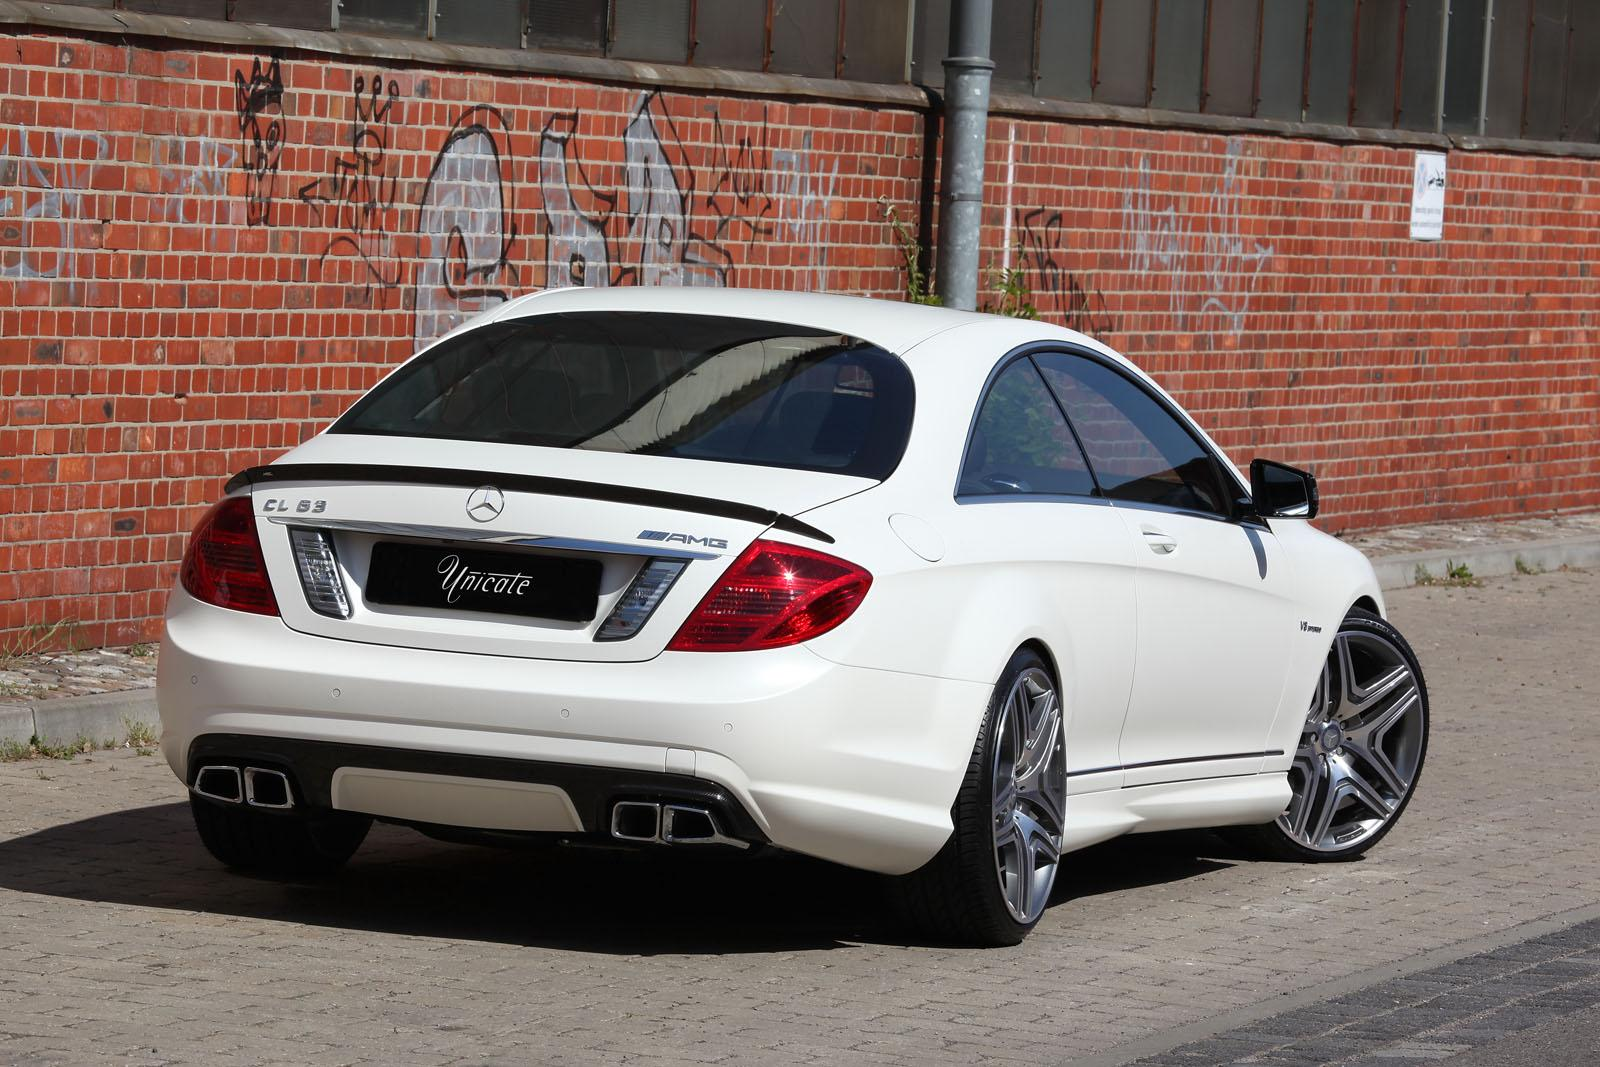 Mercedes Cl63 Amg Tuned By Unicate